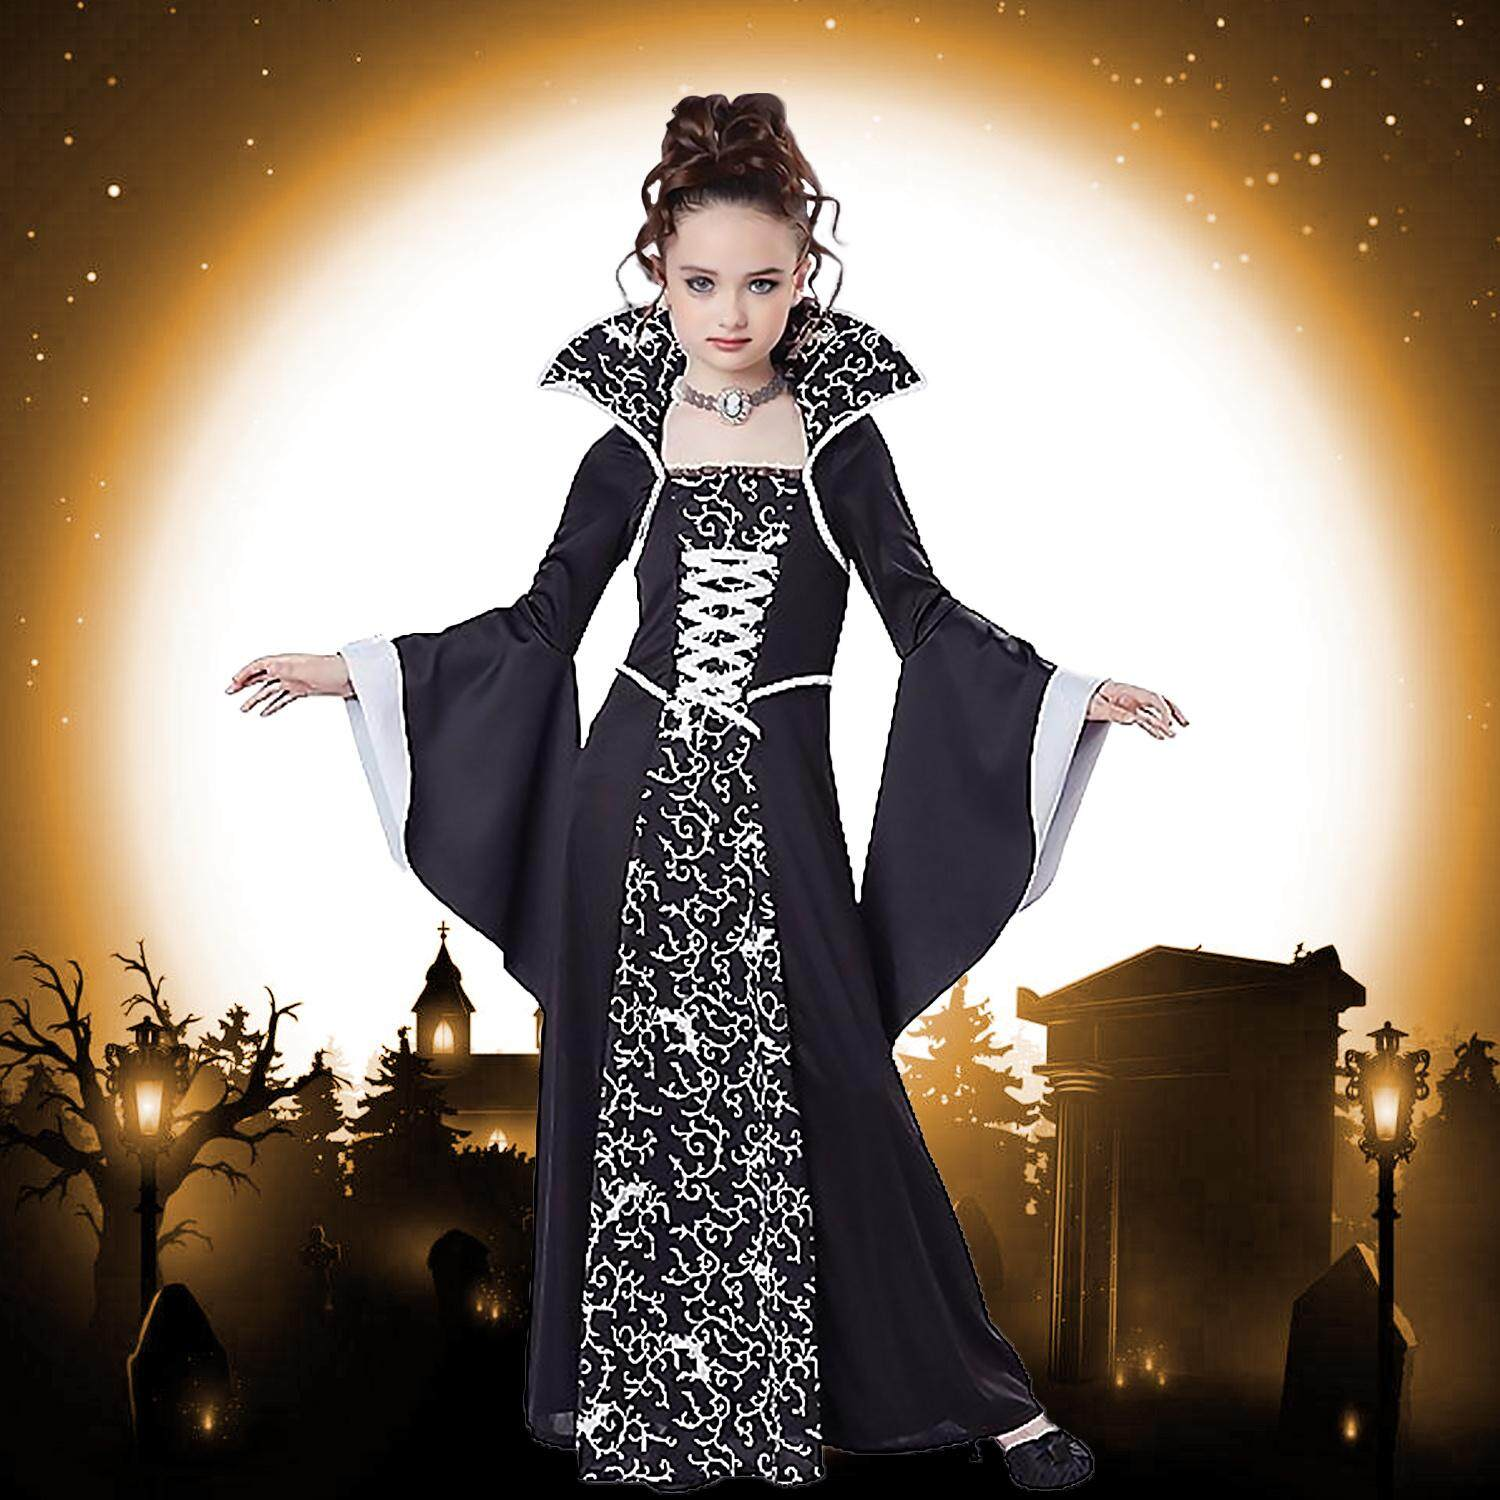 Random Style Kid Girls Fashion Classic Witch Dress Costume for Halloween Party Cosplay Role Play Stage Performance Photography Costumes